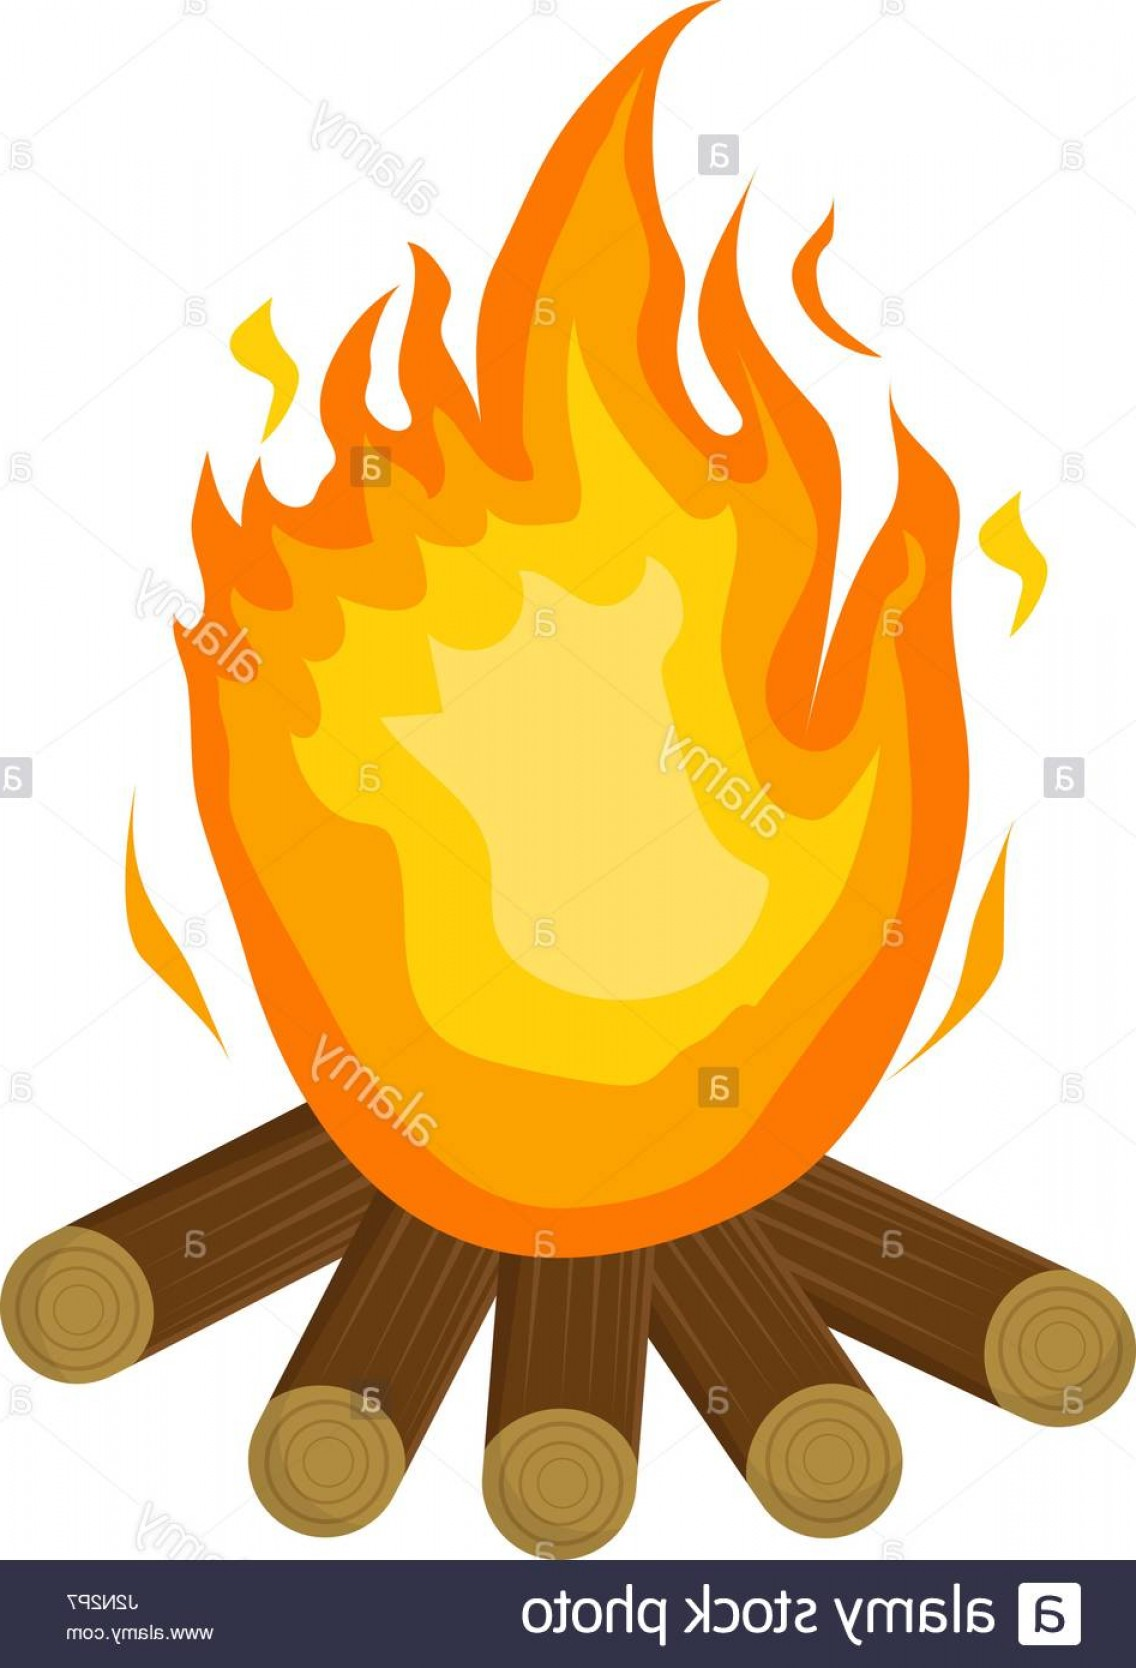 Fire Clip Art Vector: Stock Photo Festa Junina Fire Icon Flat Cartoon Style Bonfire Isolated On White